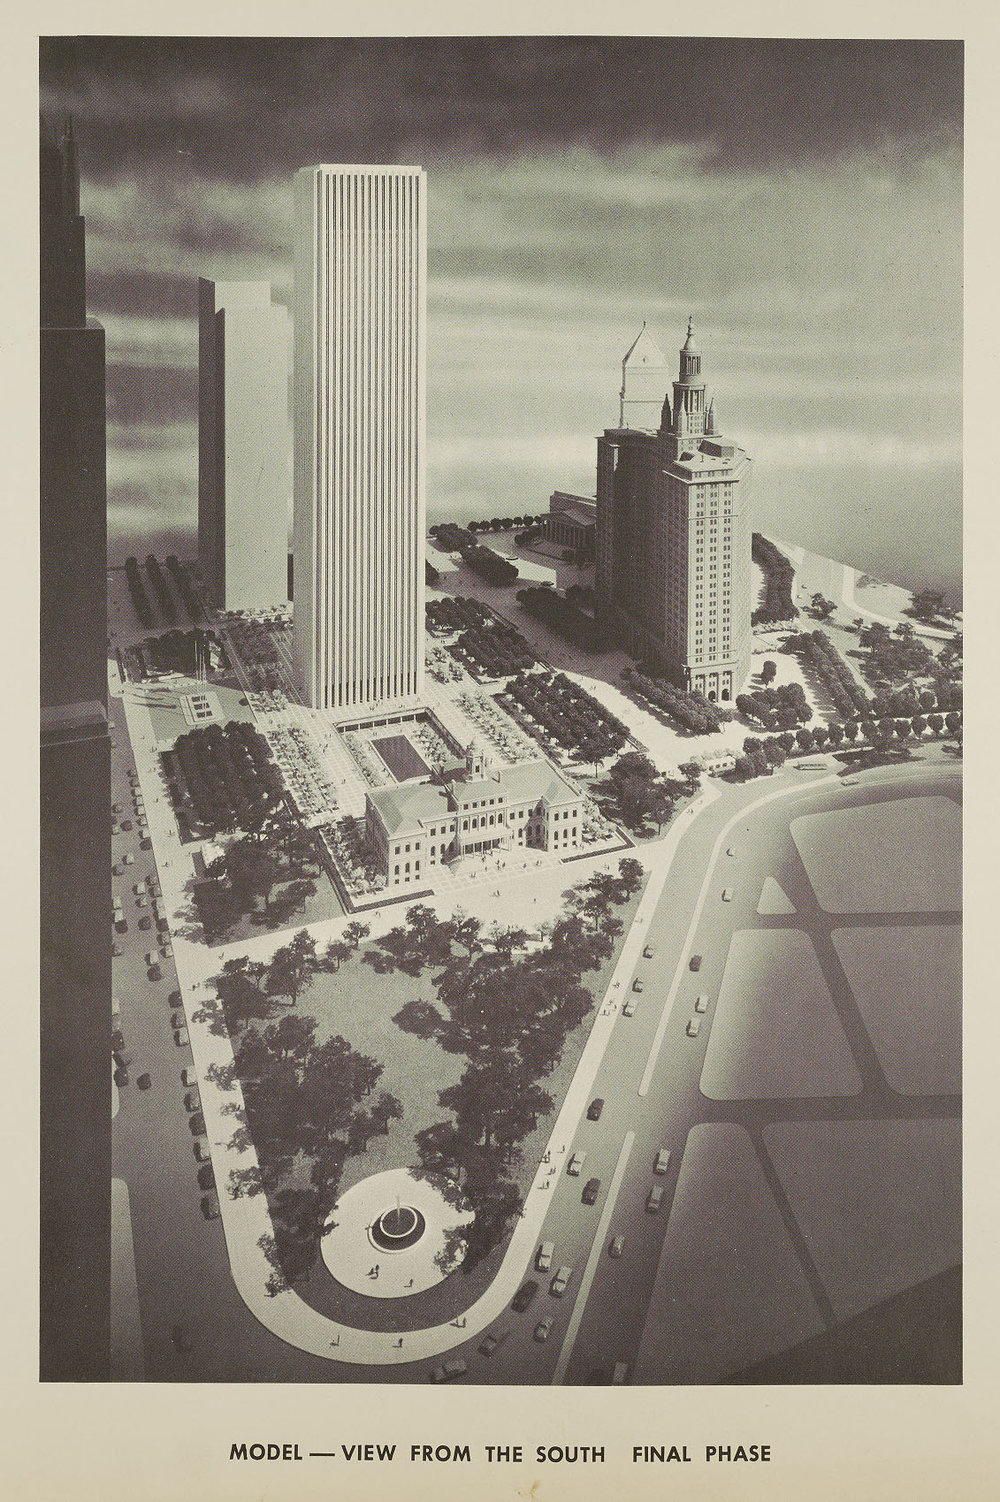 Final phase of the Civic Center Plan, with the removal of the Surrogate's Court Building at 31 Chambers Street. NYC Municipal Archives.